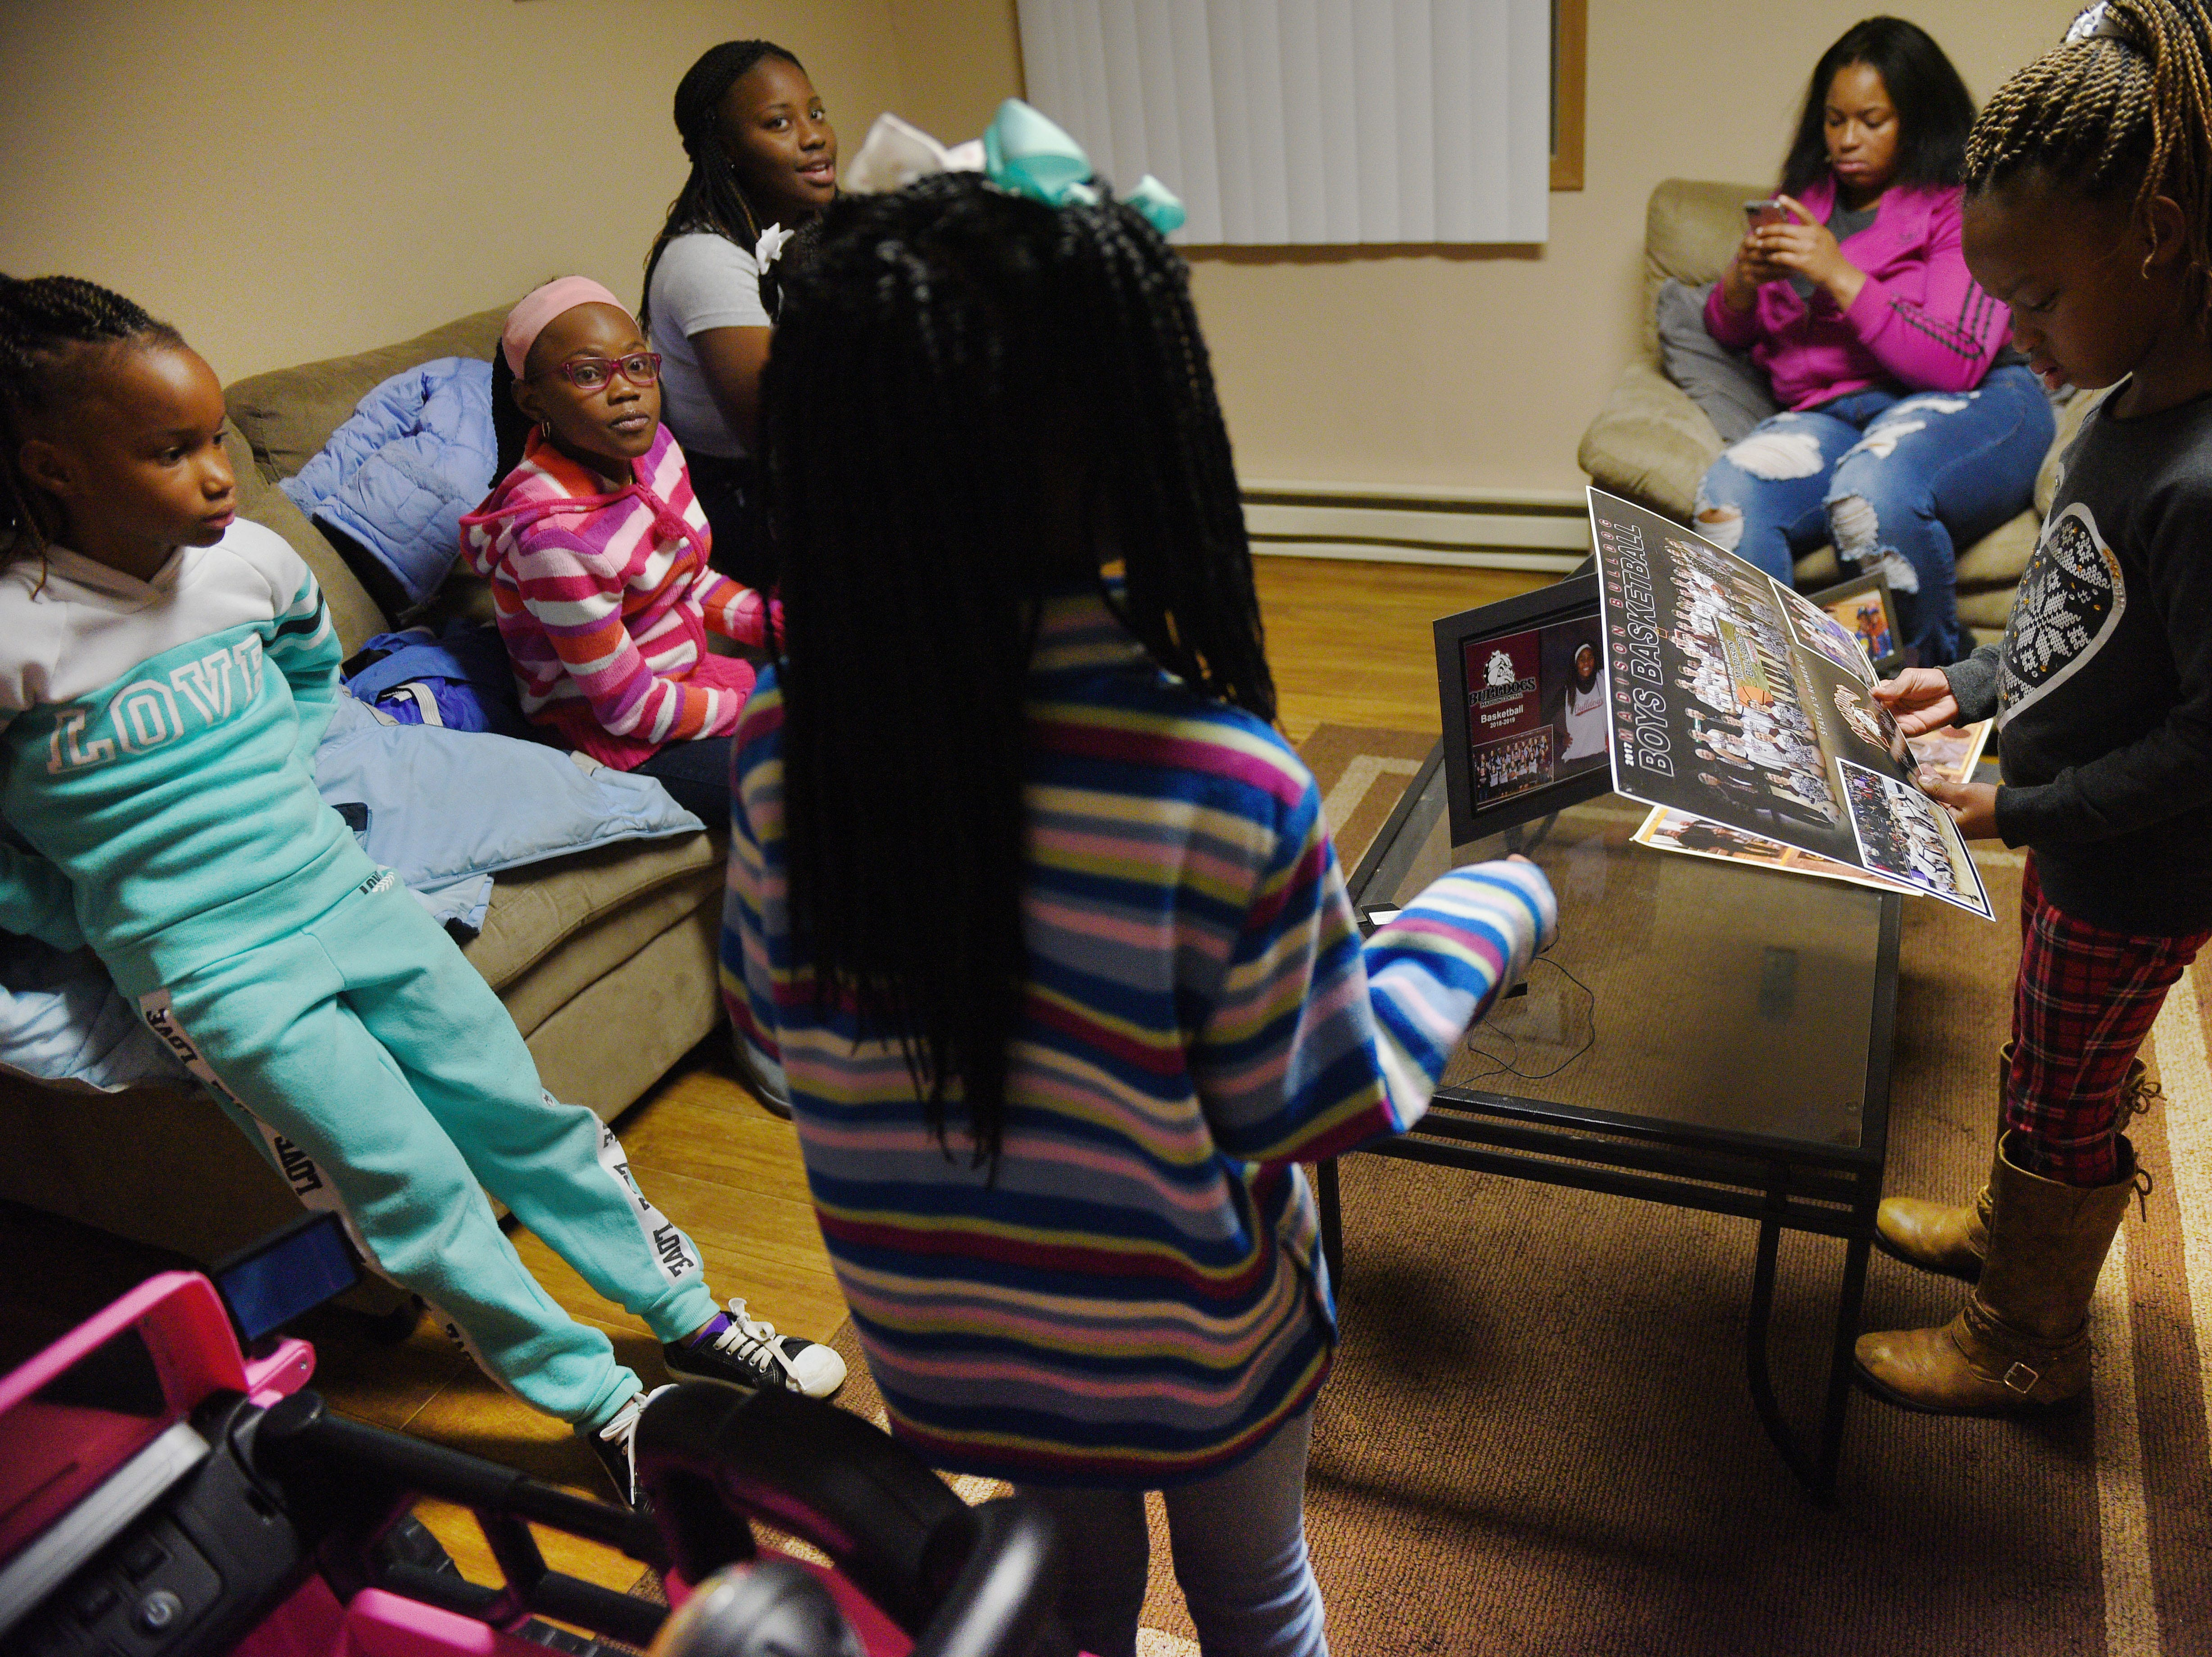 A'Zaireyah Meredith, far right, holds a team photo of Doyle Brown Thursday, Jan. 9, at Iesha Meredith's home in Madison. Doyle's three sisters and six nieces live in Madison.